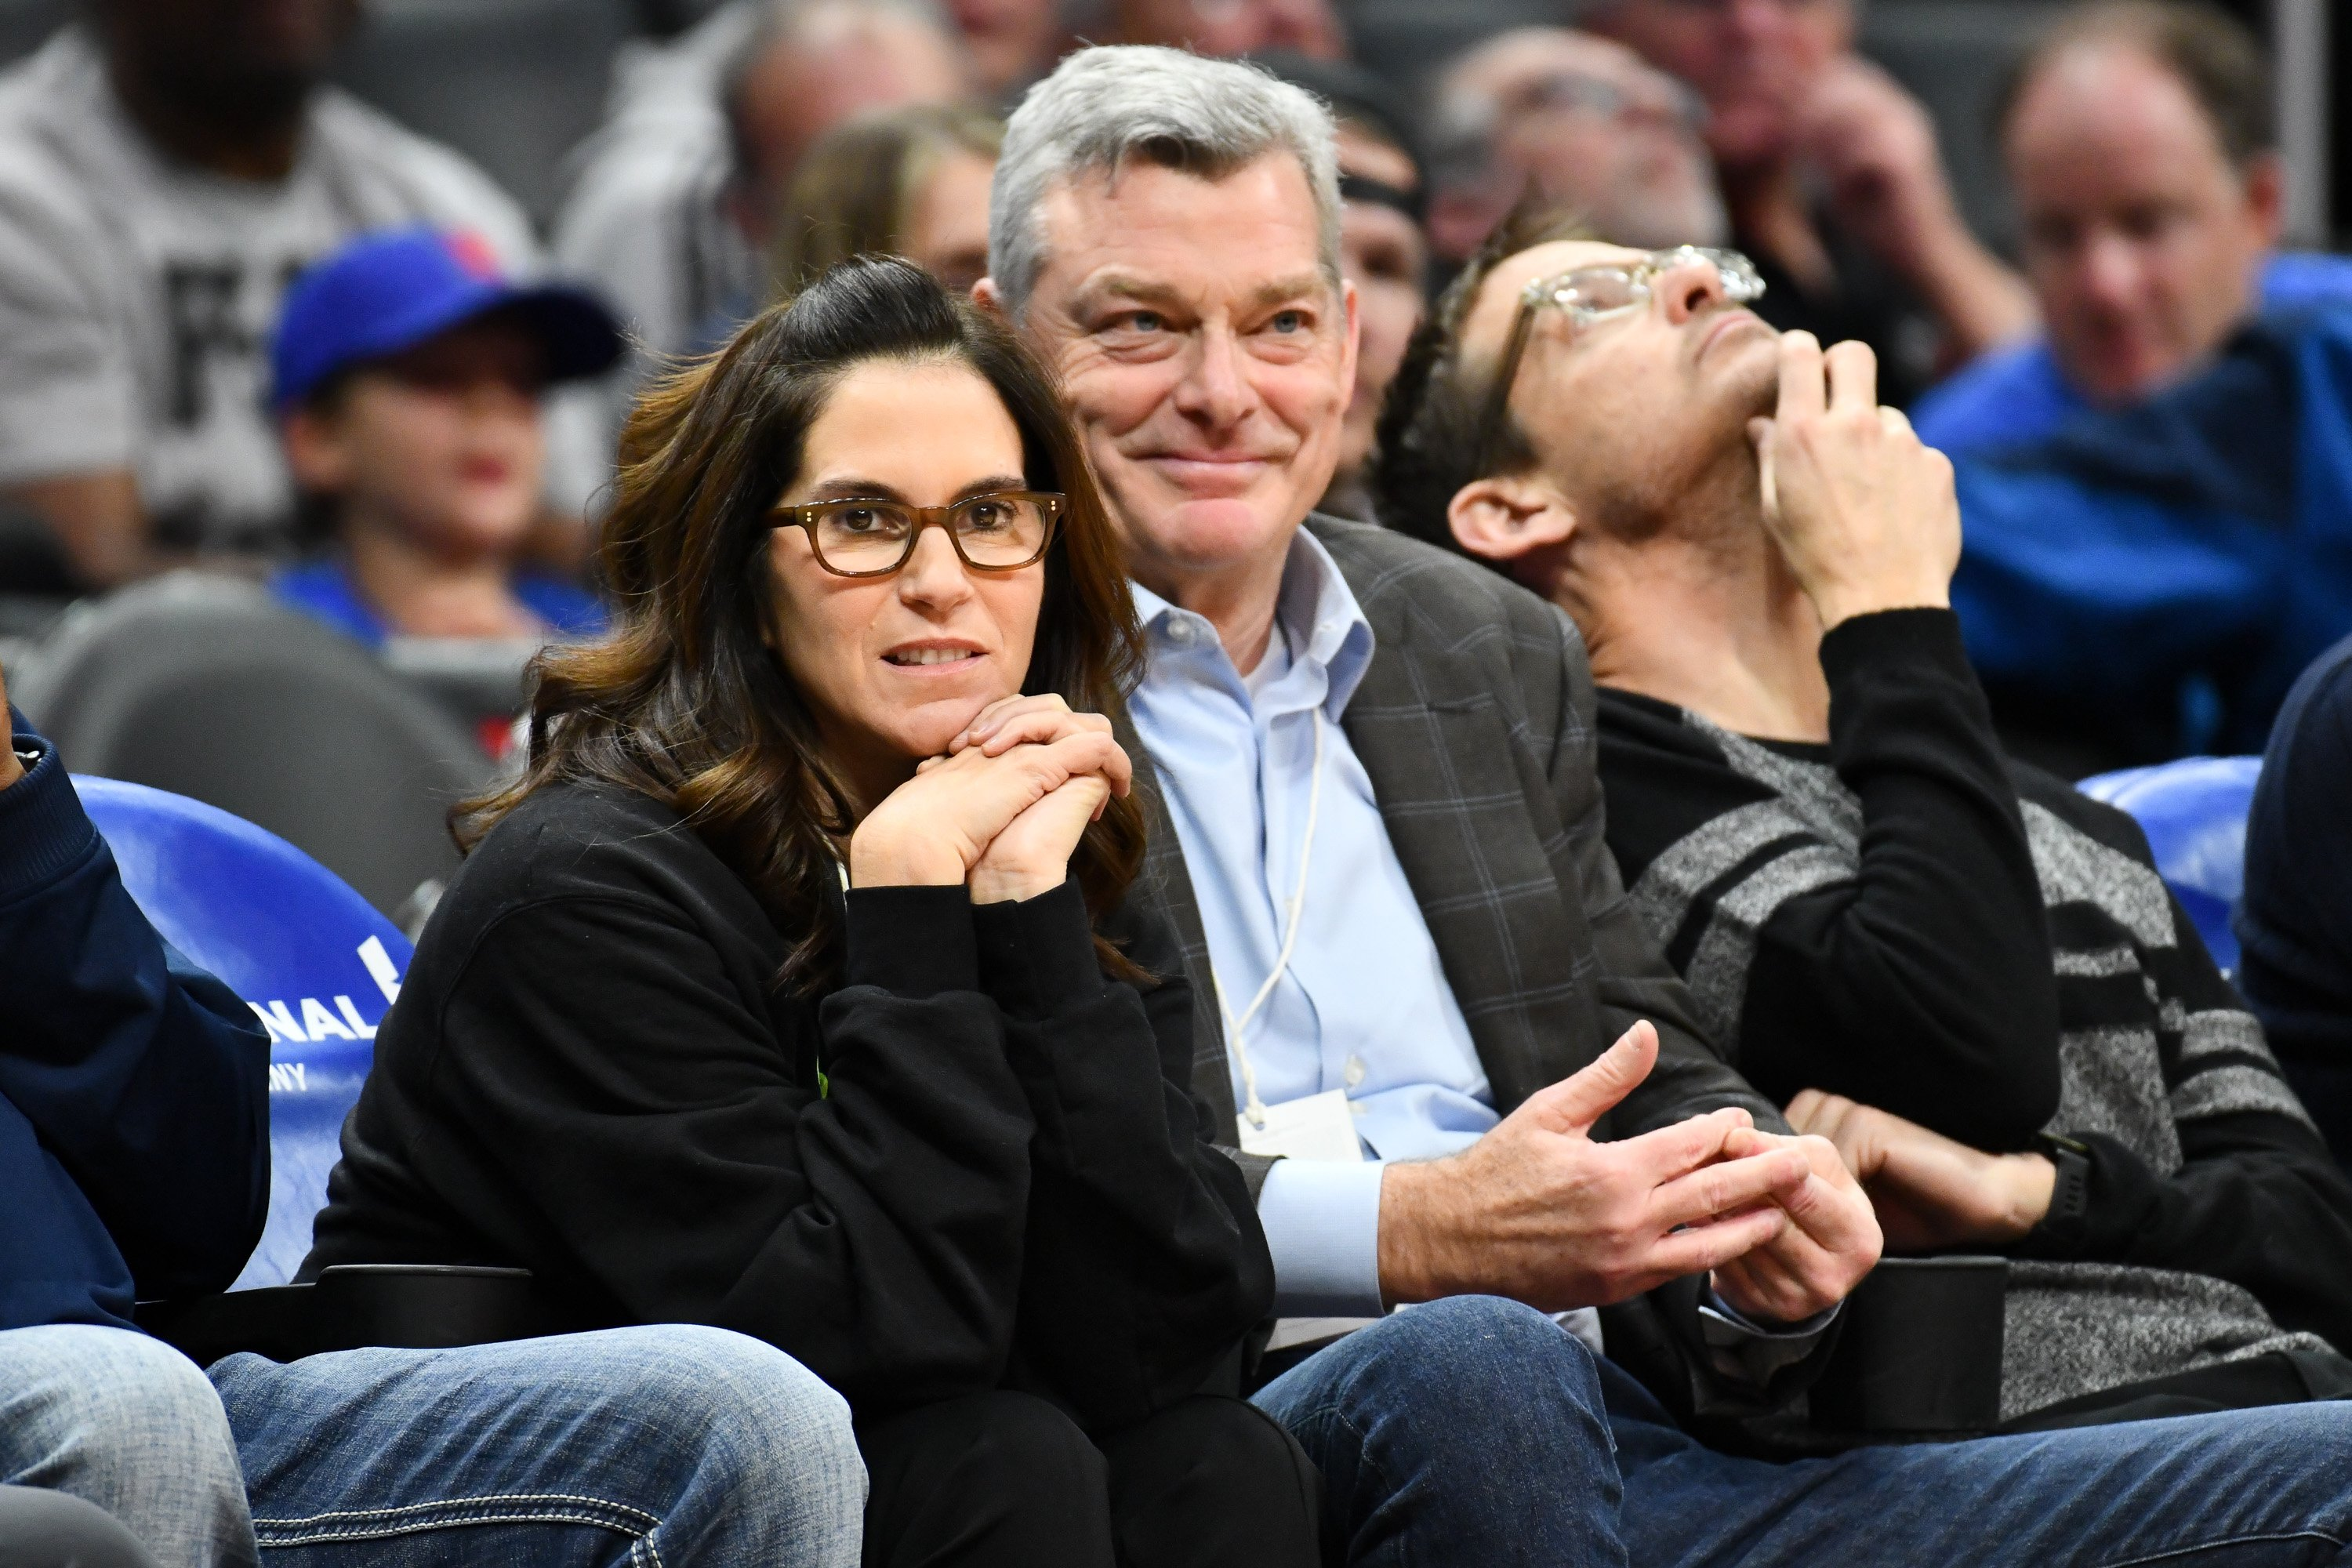 ami Gertz and Antony Ressler attend a basketball game between the Los Angeles Clippers and the Atlanta Hawks at Staples Center on January 28, 2019. | Source: Getty Images